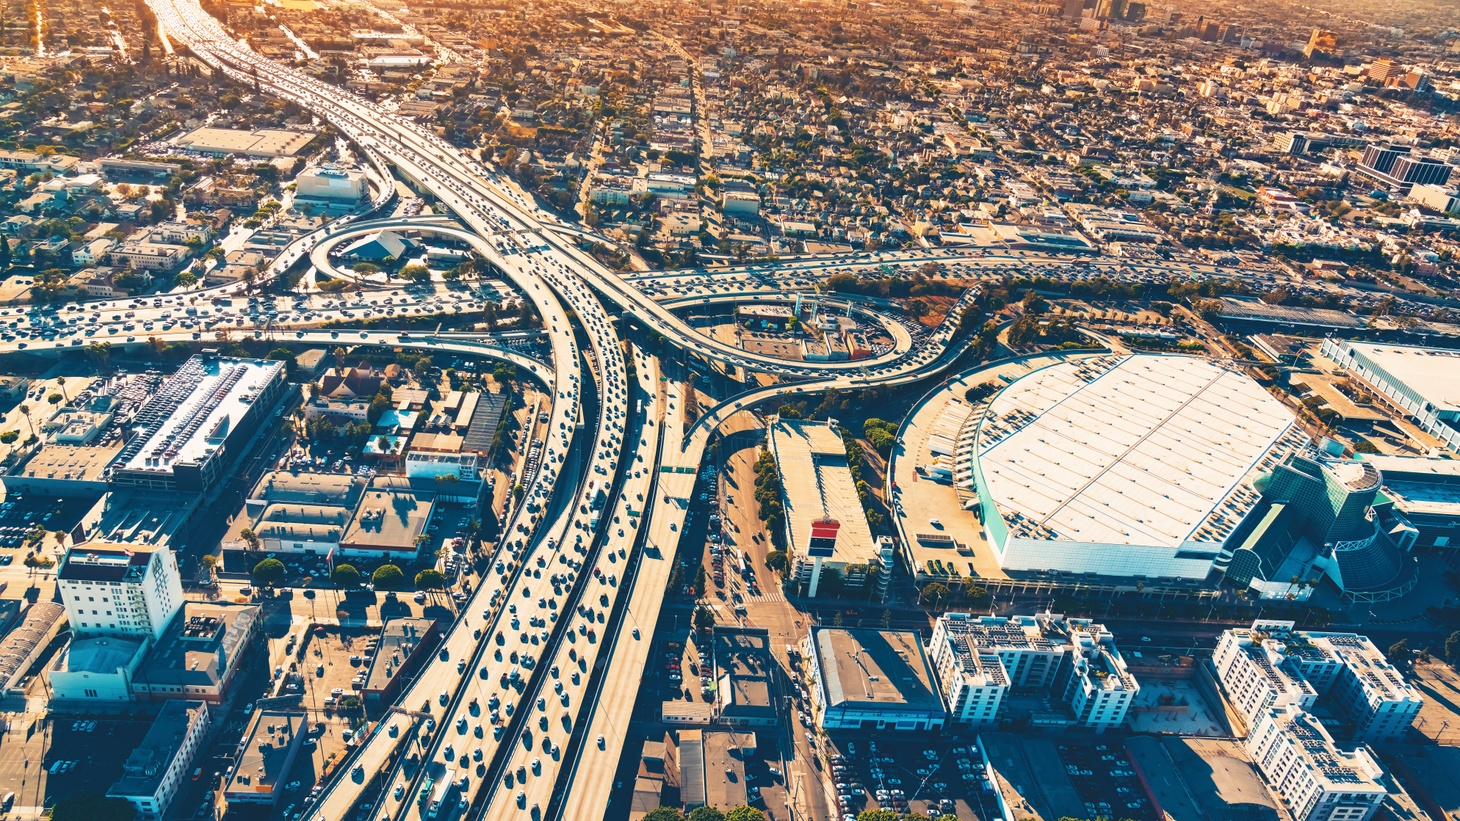 """""""In any region where cars are the predominant mode of travel, you're going to have freeways bisecting communities. It's a very balkanized region, in the sense that there are racially identified viable neighborhoods across the region,"""" says Stephen Menendian of UC Berkeley's Othering and Belonging Institute."""